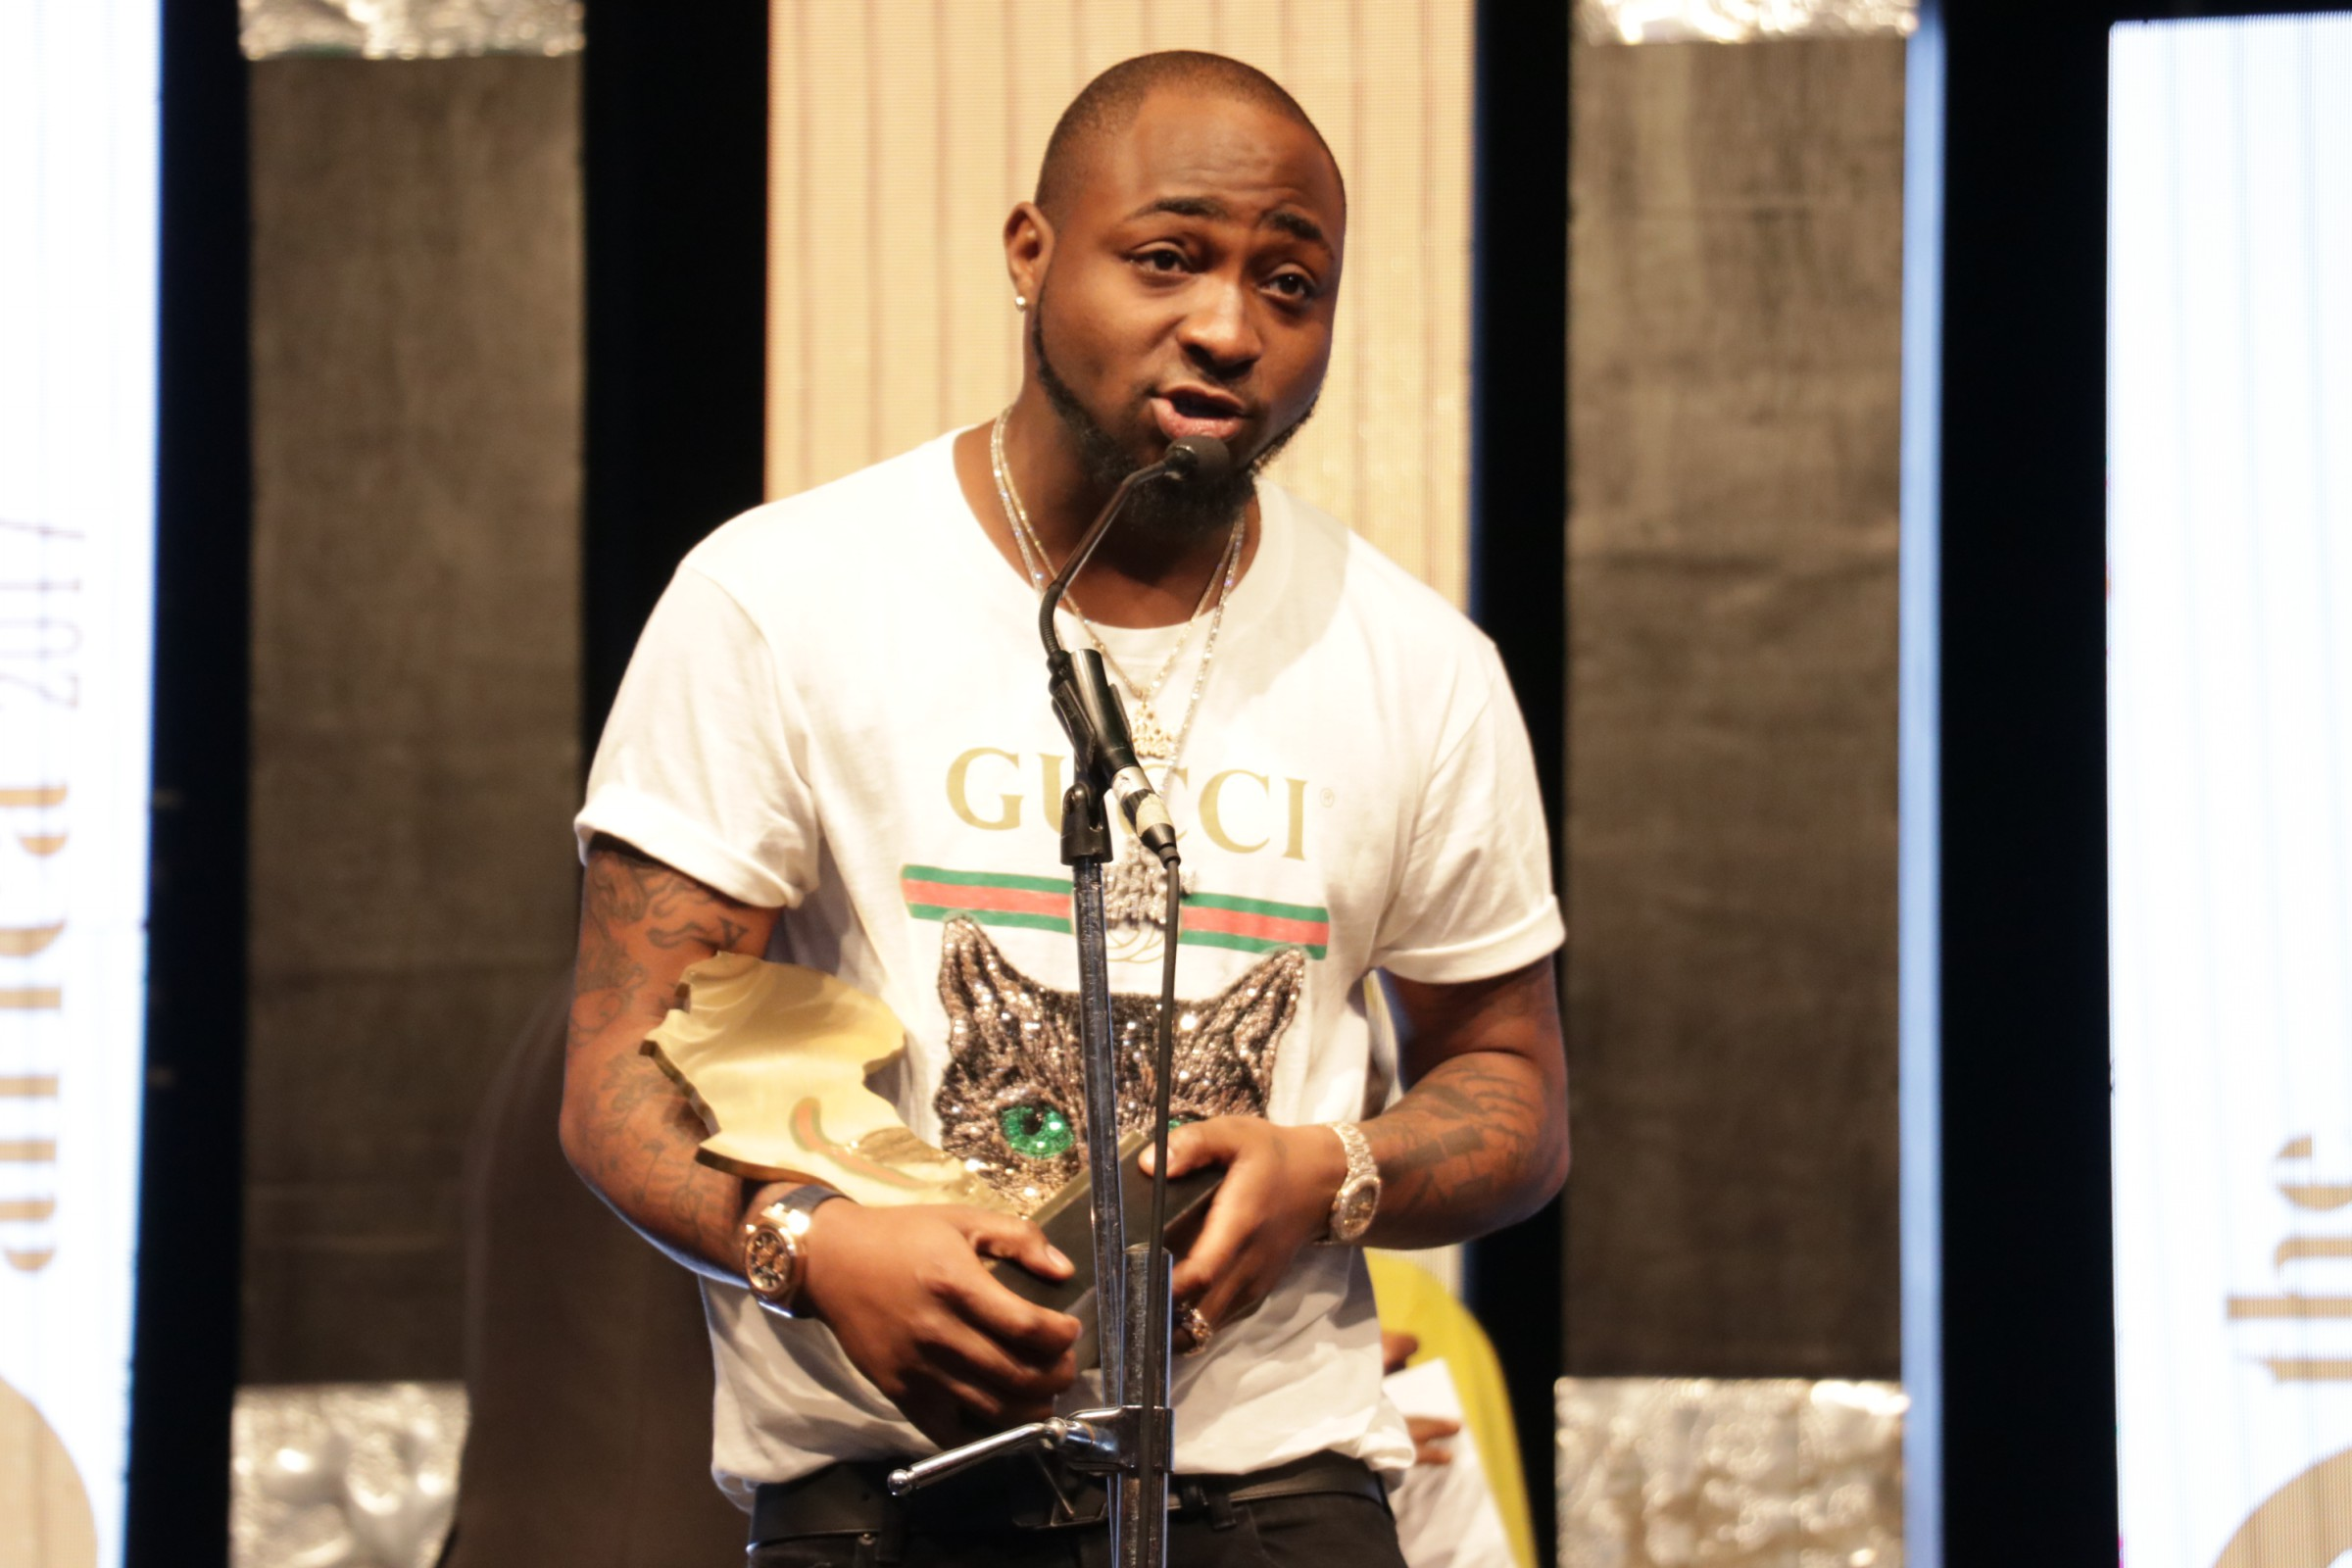 Davido and Wizkid emerge winners at The Future Awards Africa 2017